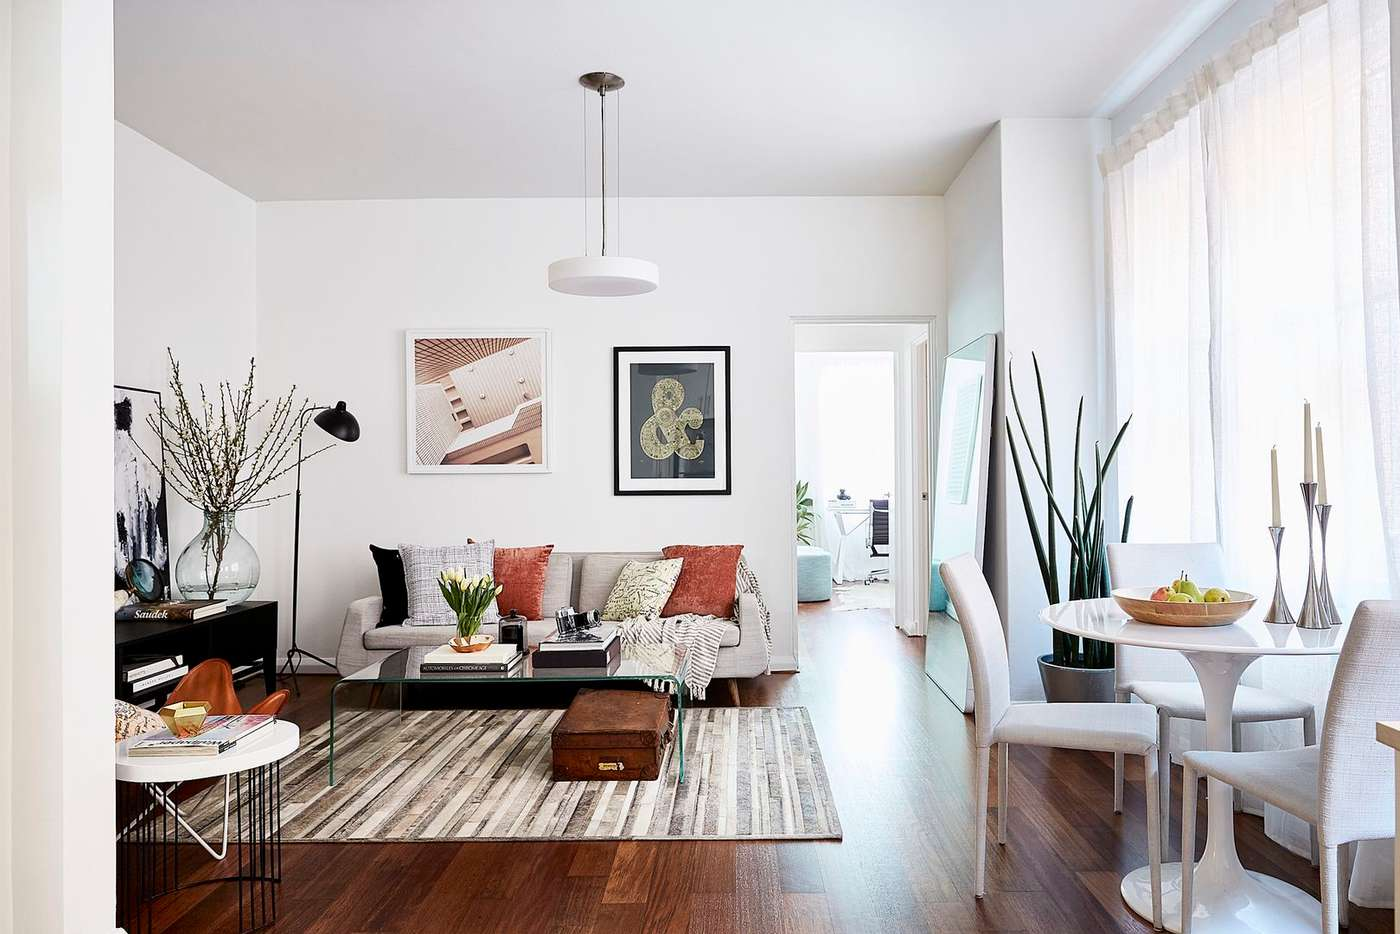 Main view of Homely apartment listing, 2/3 Ocean Street, Woollahra NSW 2025